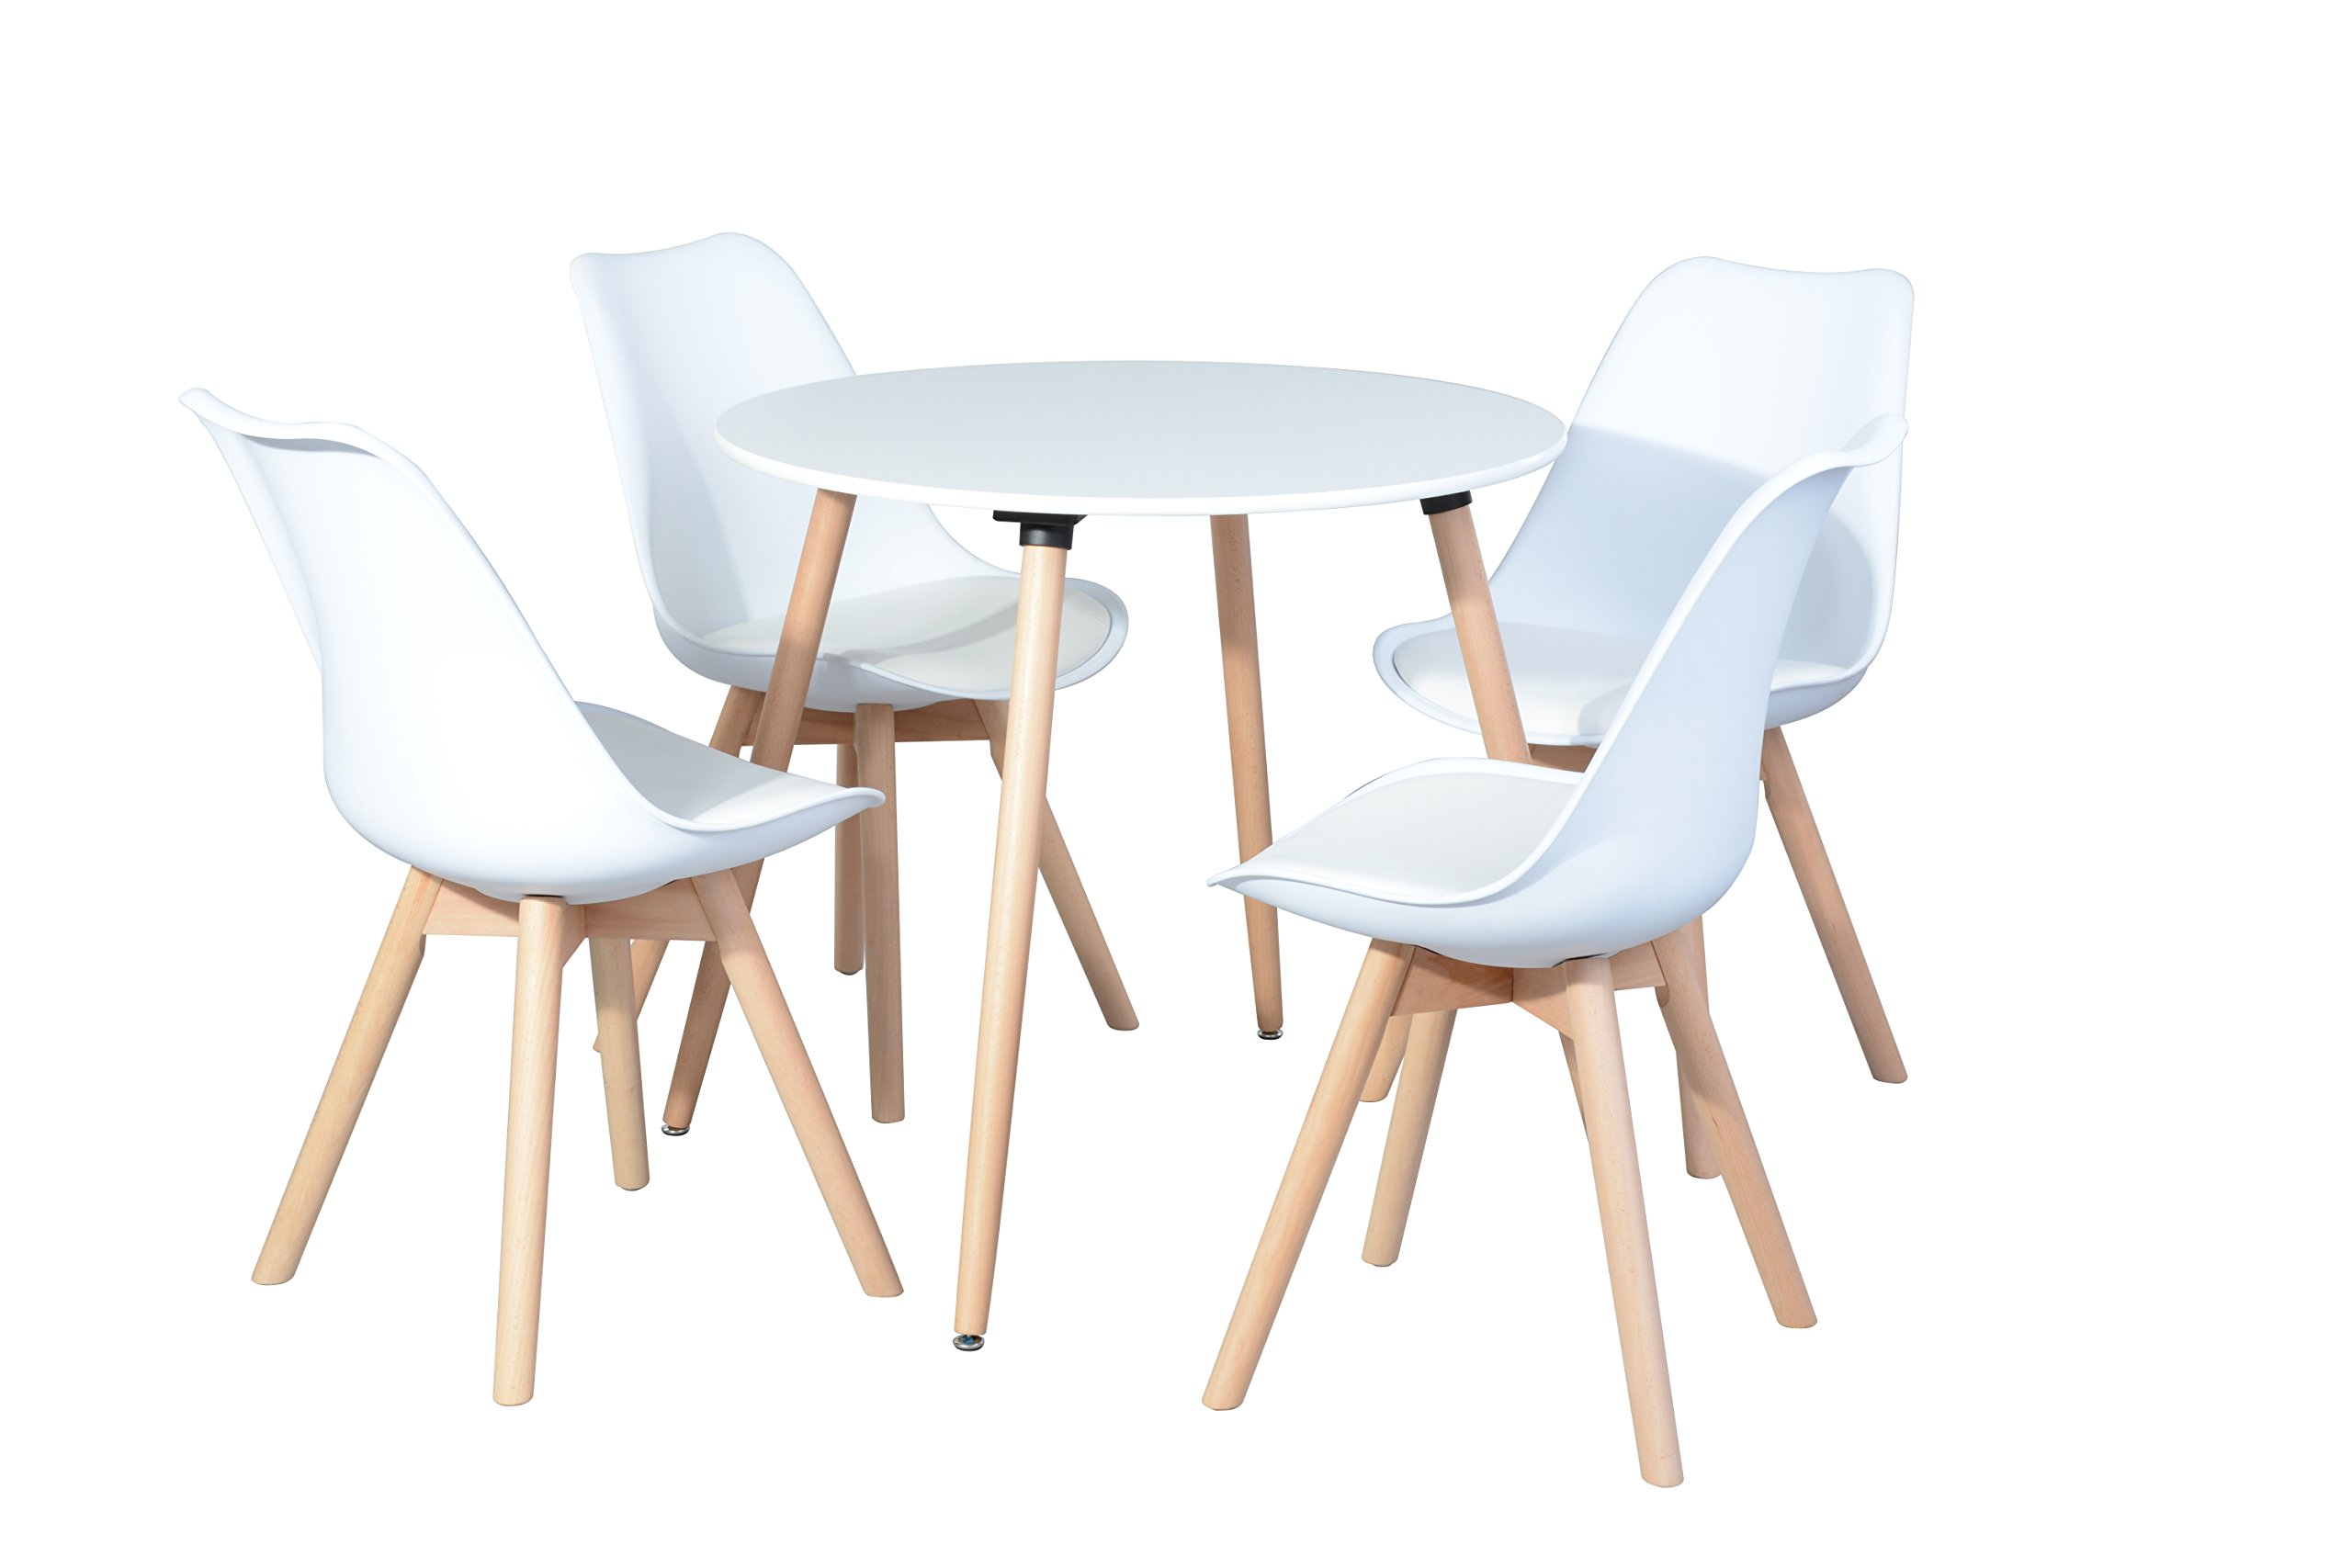 White Finish Top Steel Legs in Natural Color Round Dining Table - Mid Century Style (Table only) by None (Image #2)